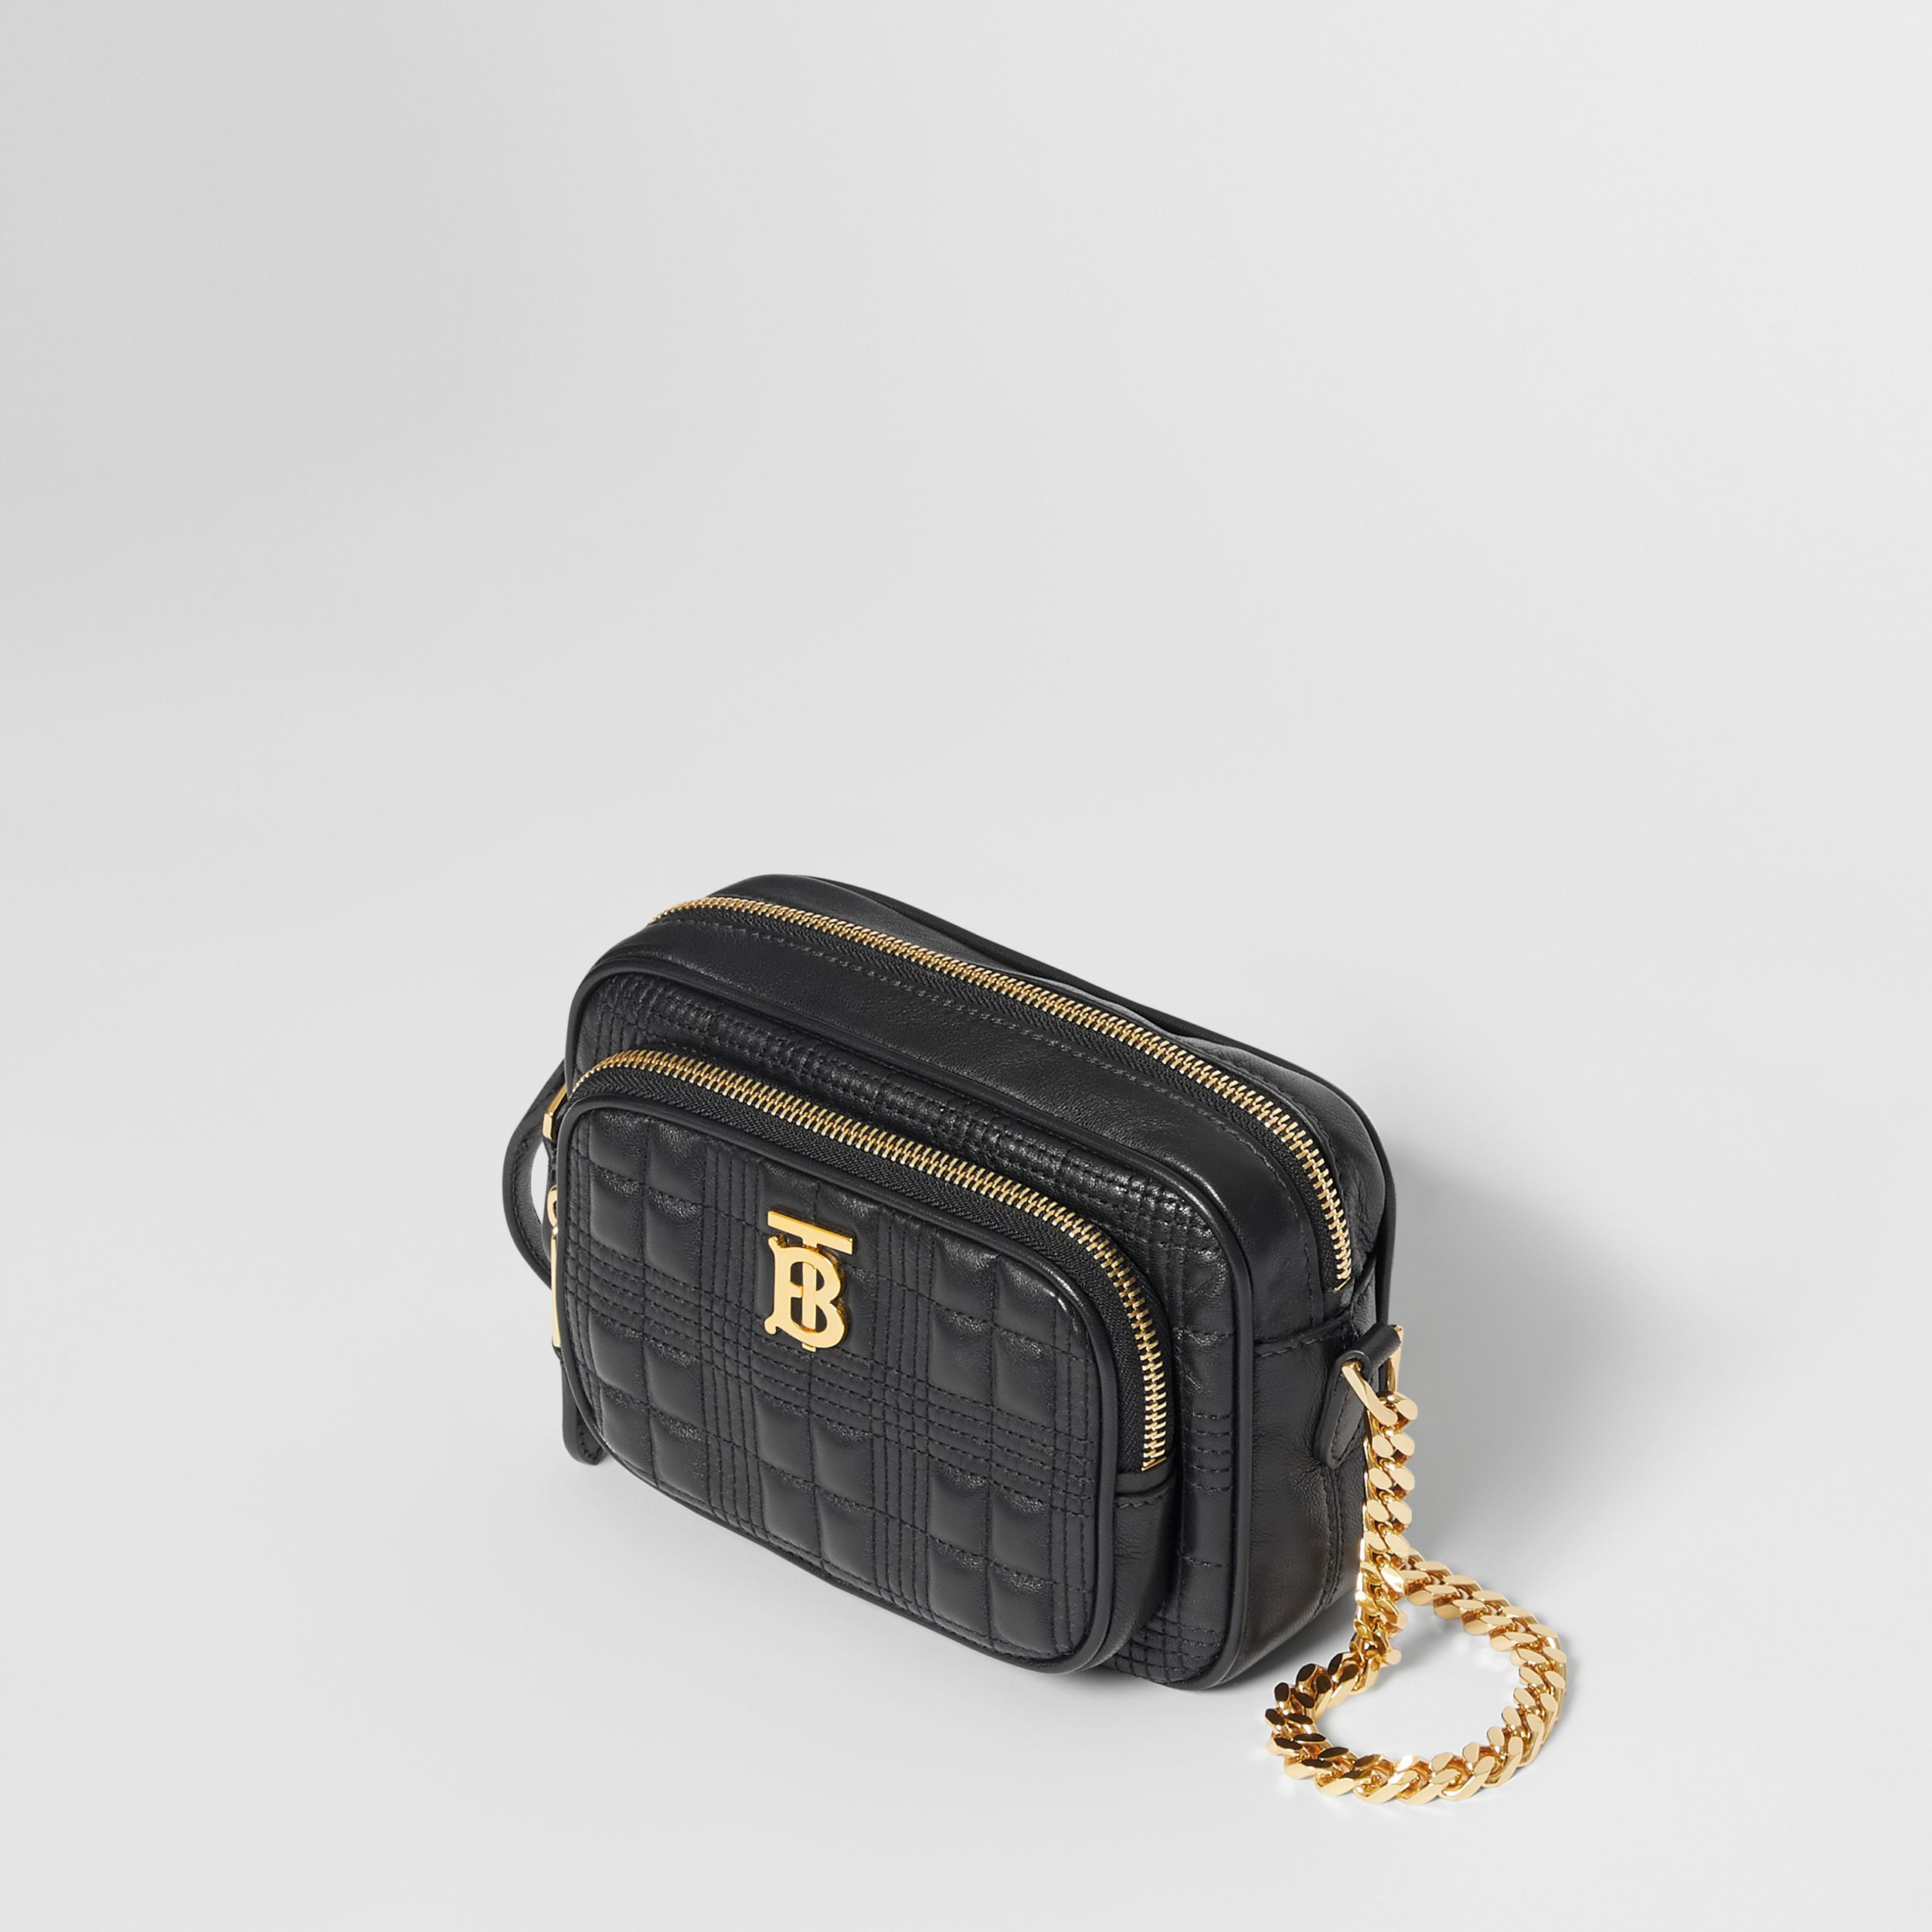 Small Quilted Lambskin Camera Bag in Black - Women | Burberry - 4